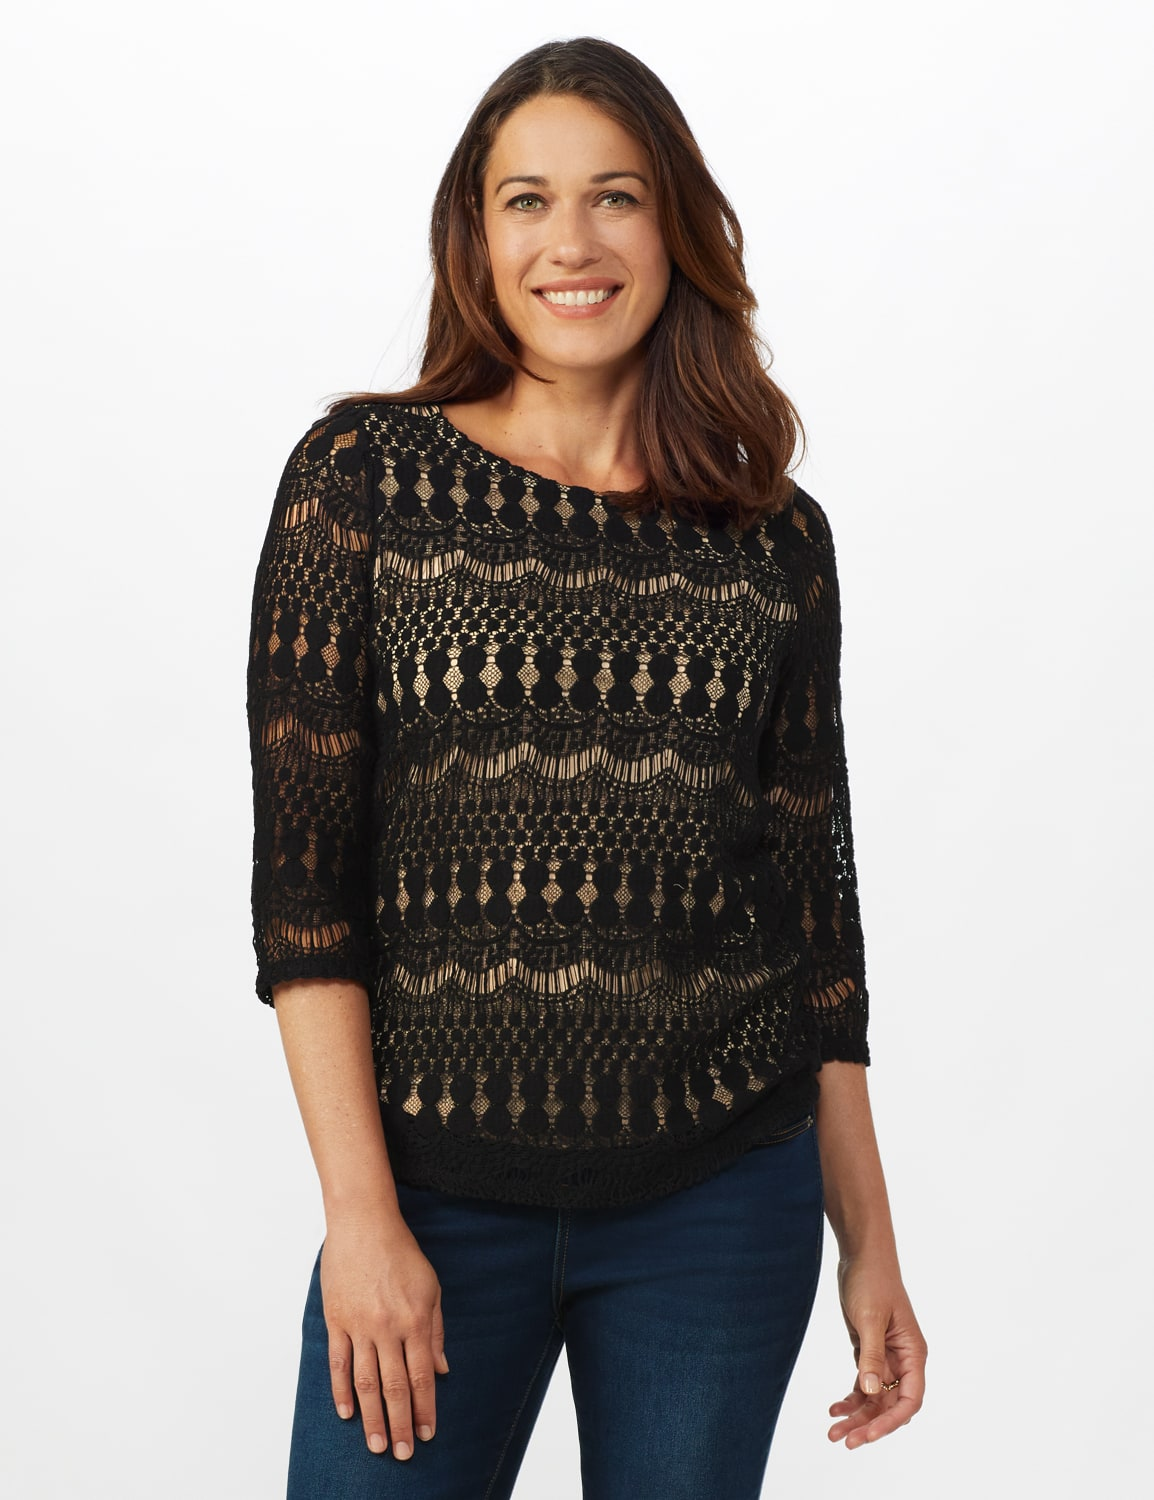 Lined Lace Knit Top - Black/Nude - Front